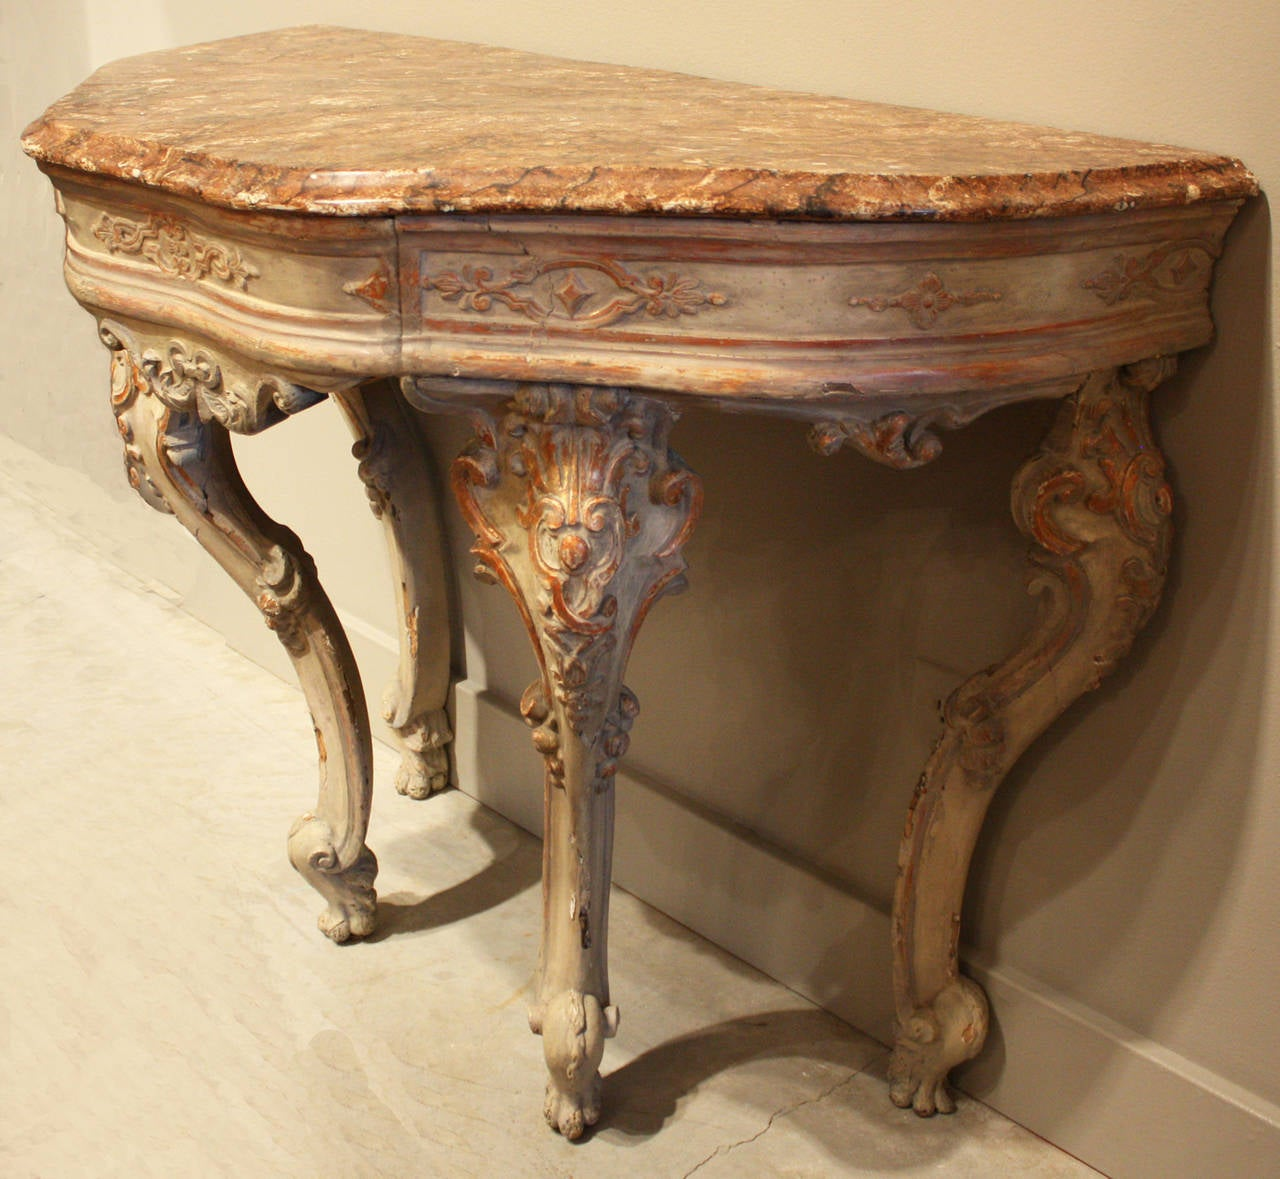 18th century Venetian gray painted and parcel-gilt console with marbleized top. Later modifications. Provenance: Christies.